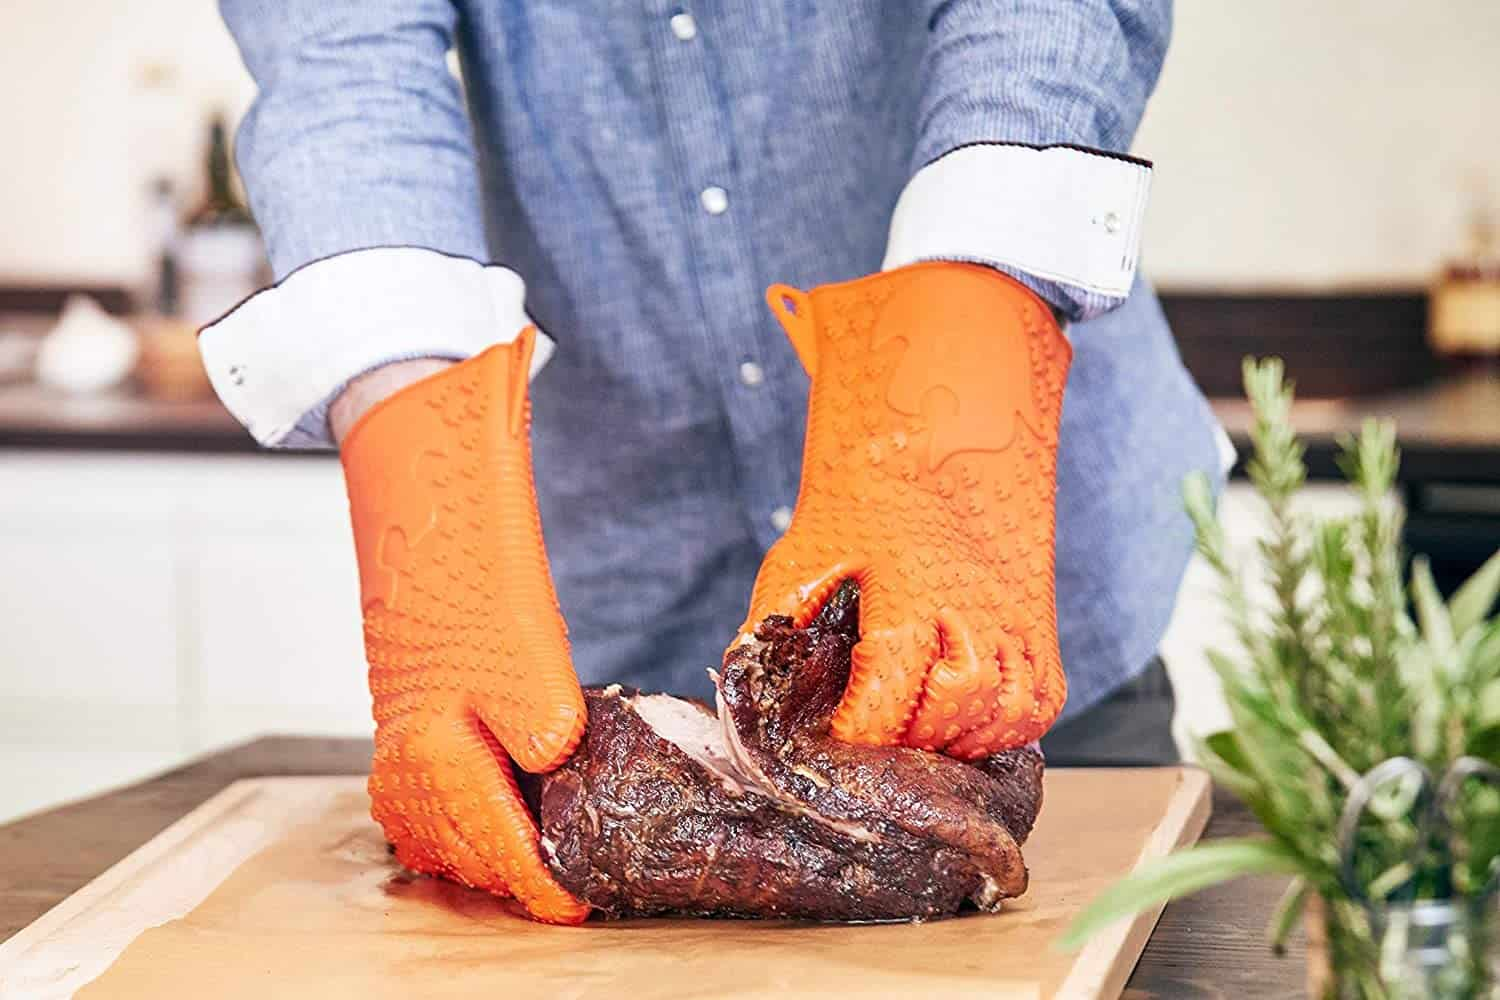 Best grill gloves- CI Jolly Green Products Ekogrips Premium BBQ Gloves prepping meat